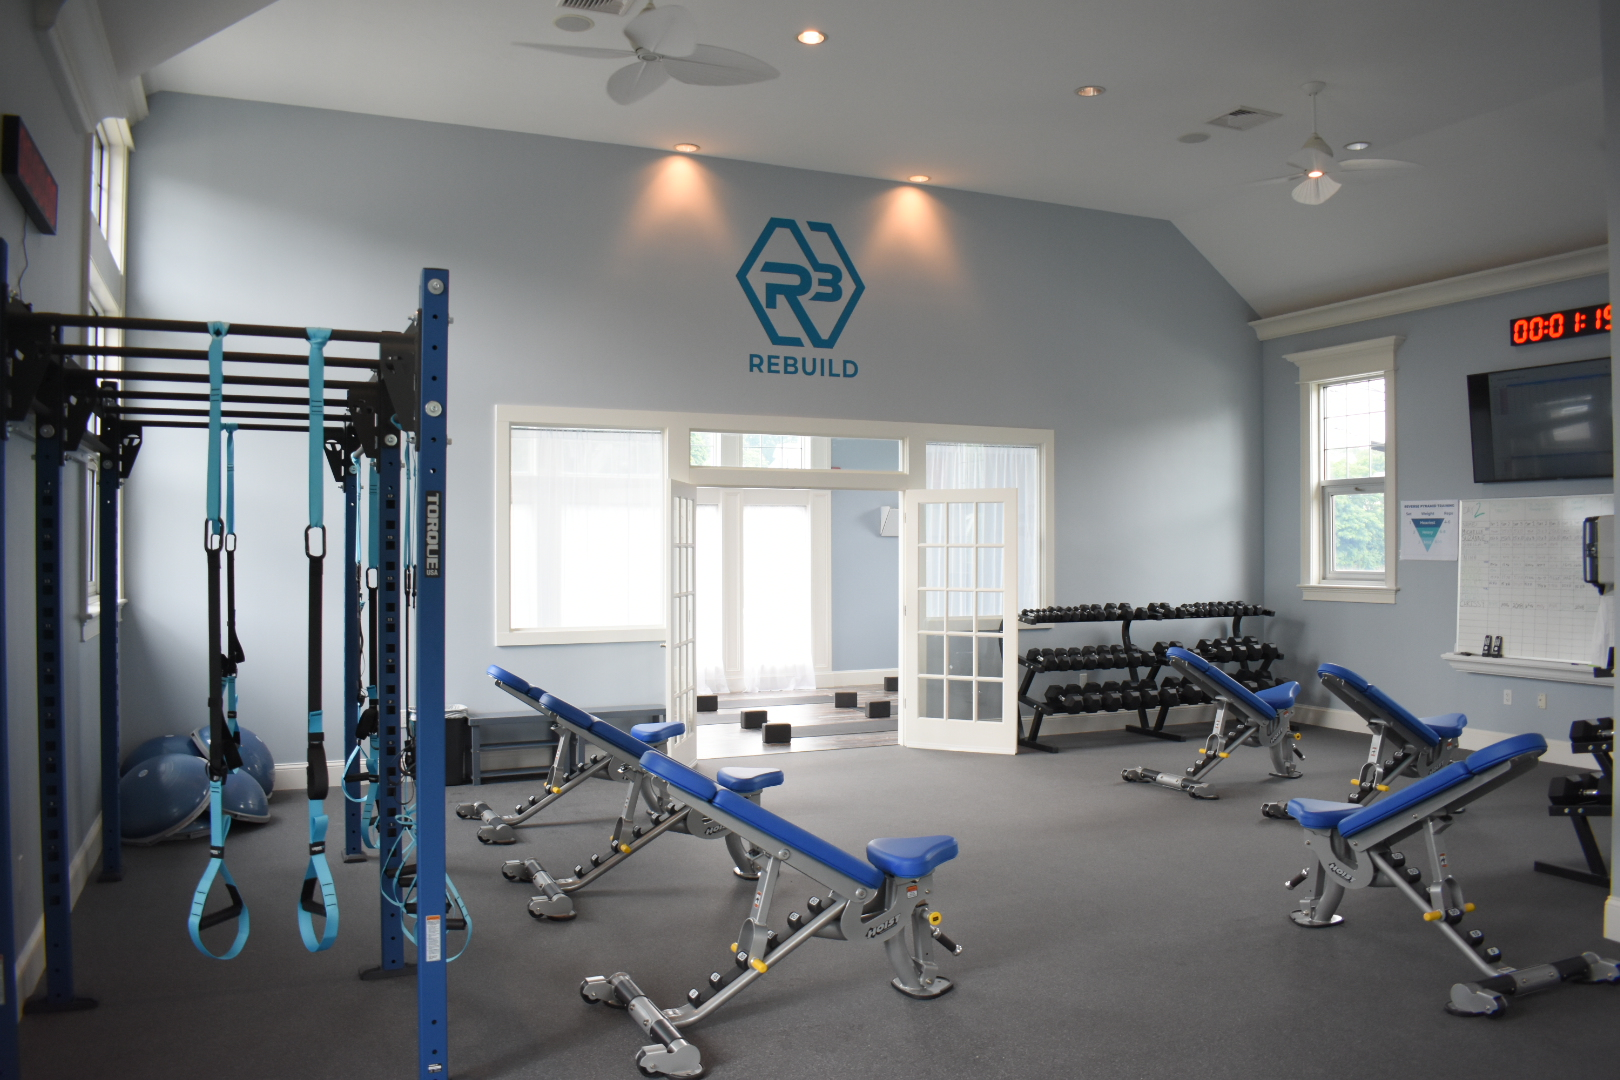 rebuild room with dumbells, benches, TRX, bosu balls